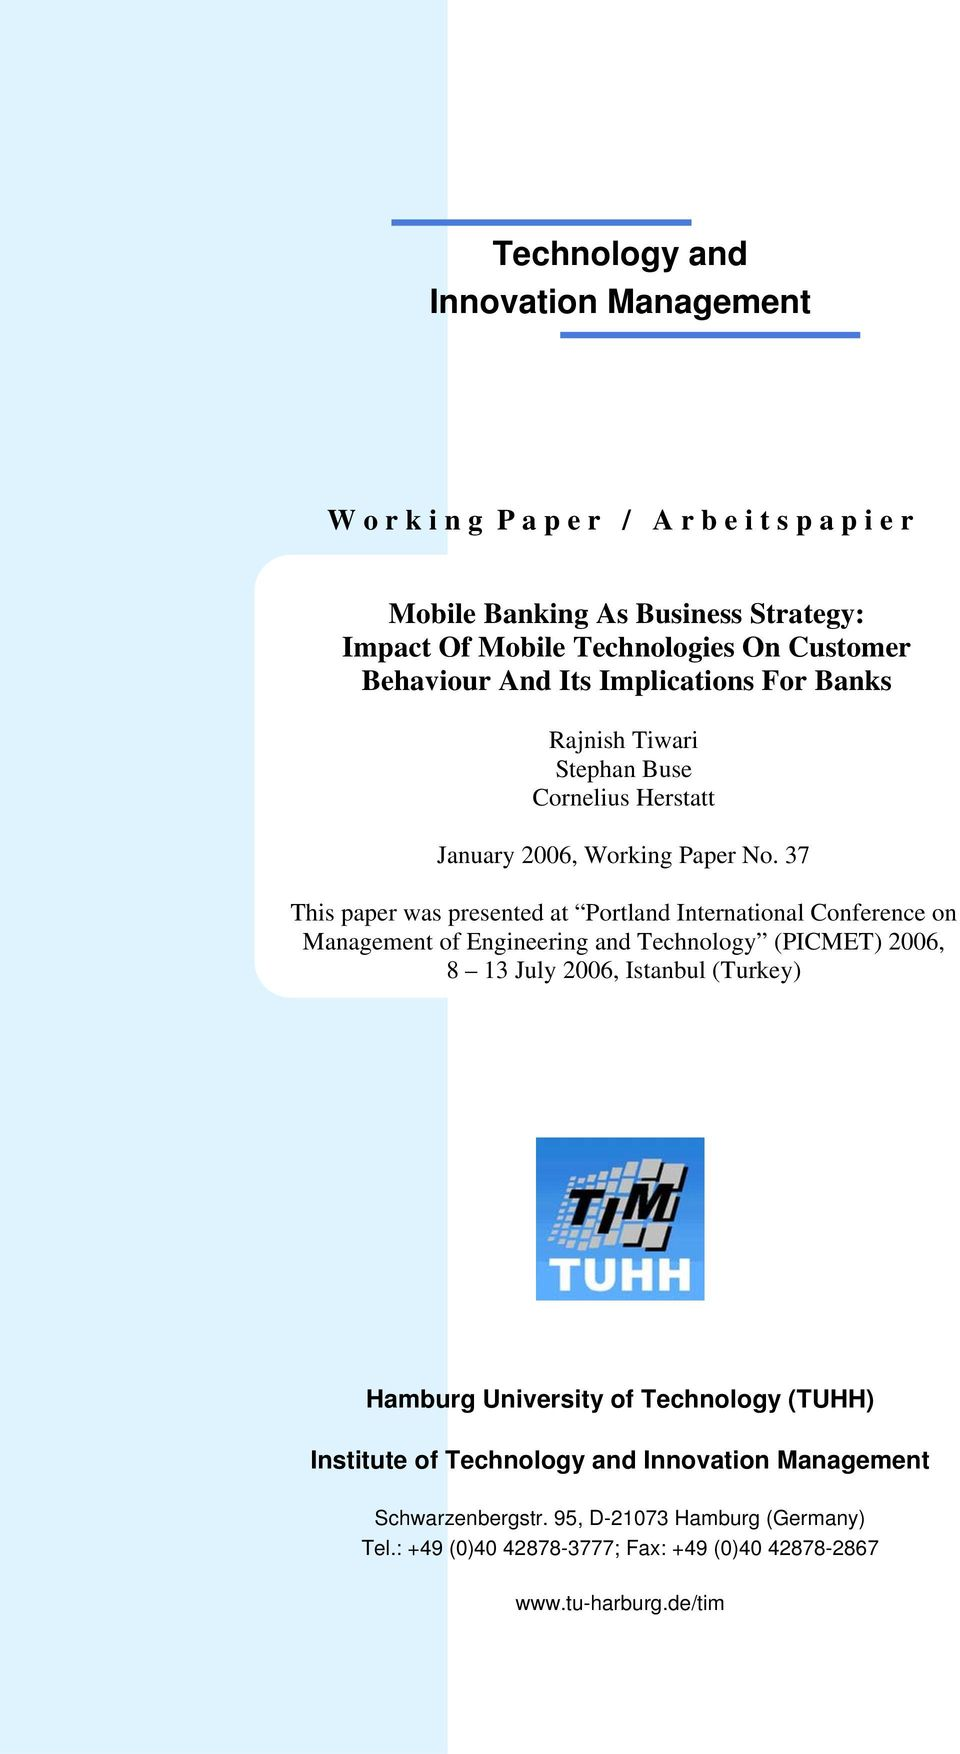 37 This paper was presented at Portland International Conference on Management of Engineering and Technology (PICMET) 2006, 8 13 July 2006, Istanbul (Turkey)